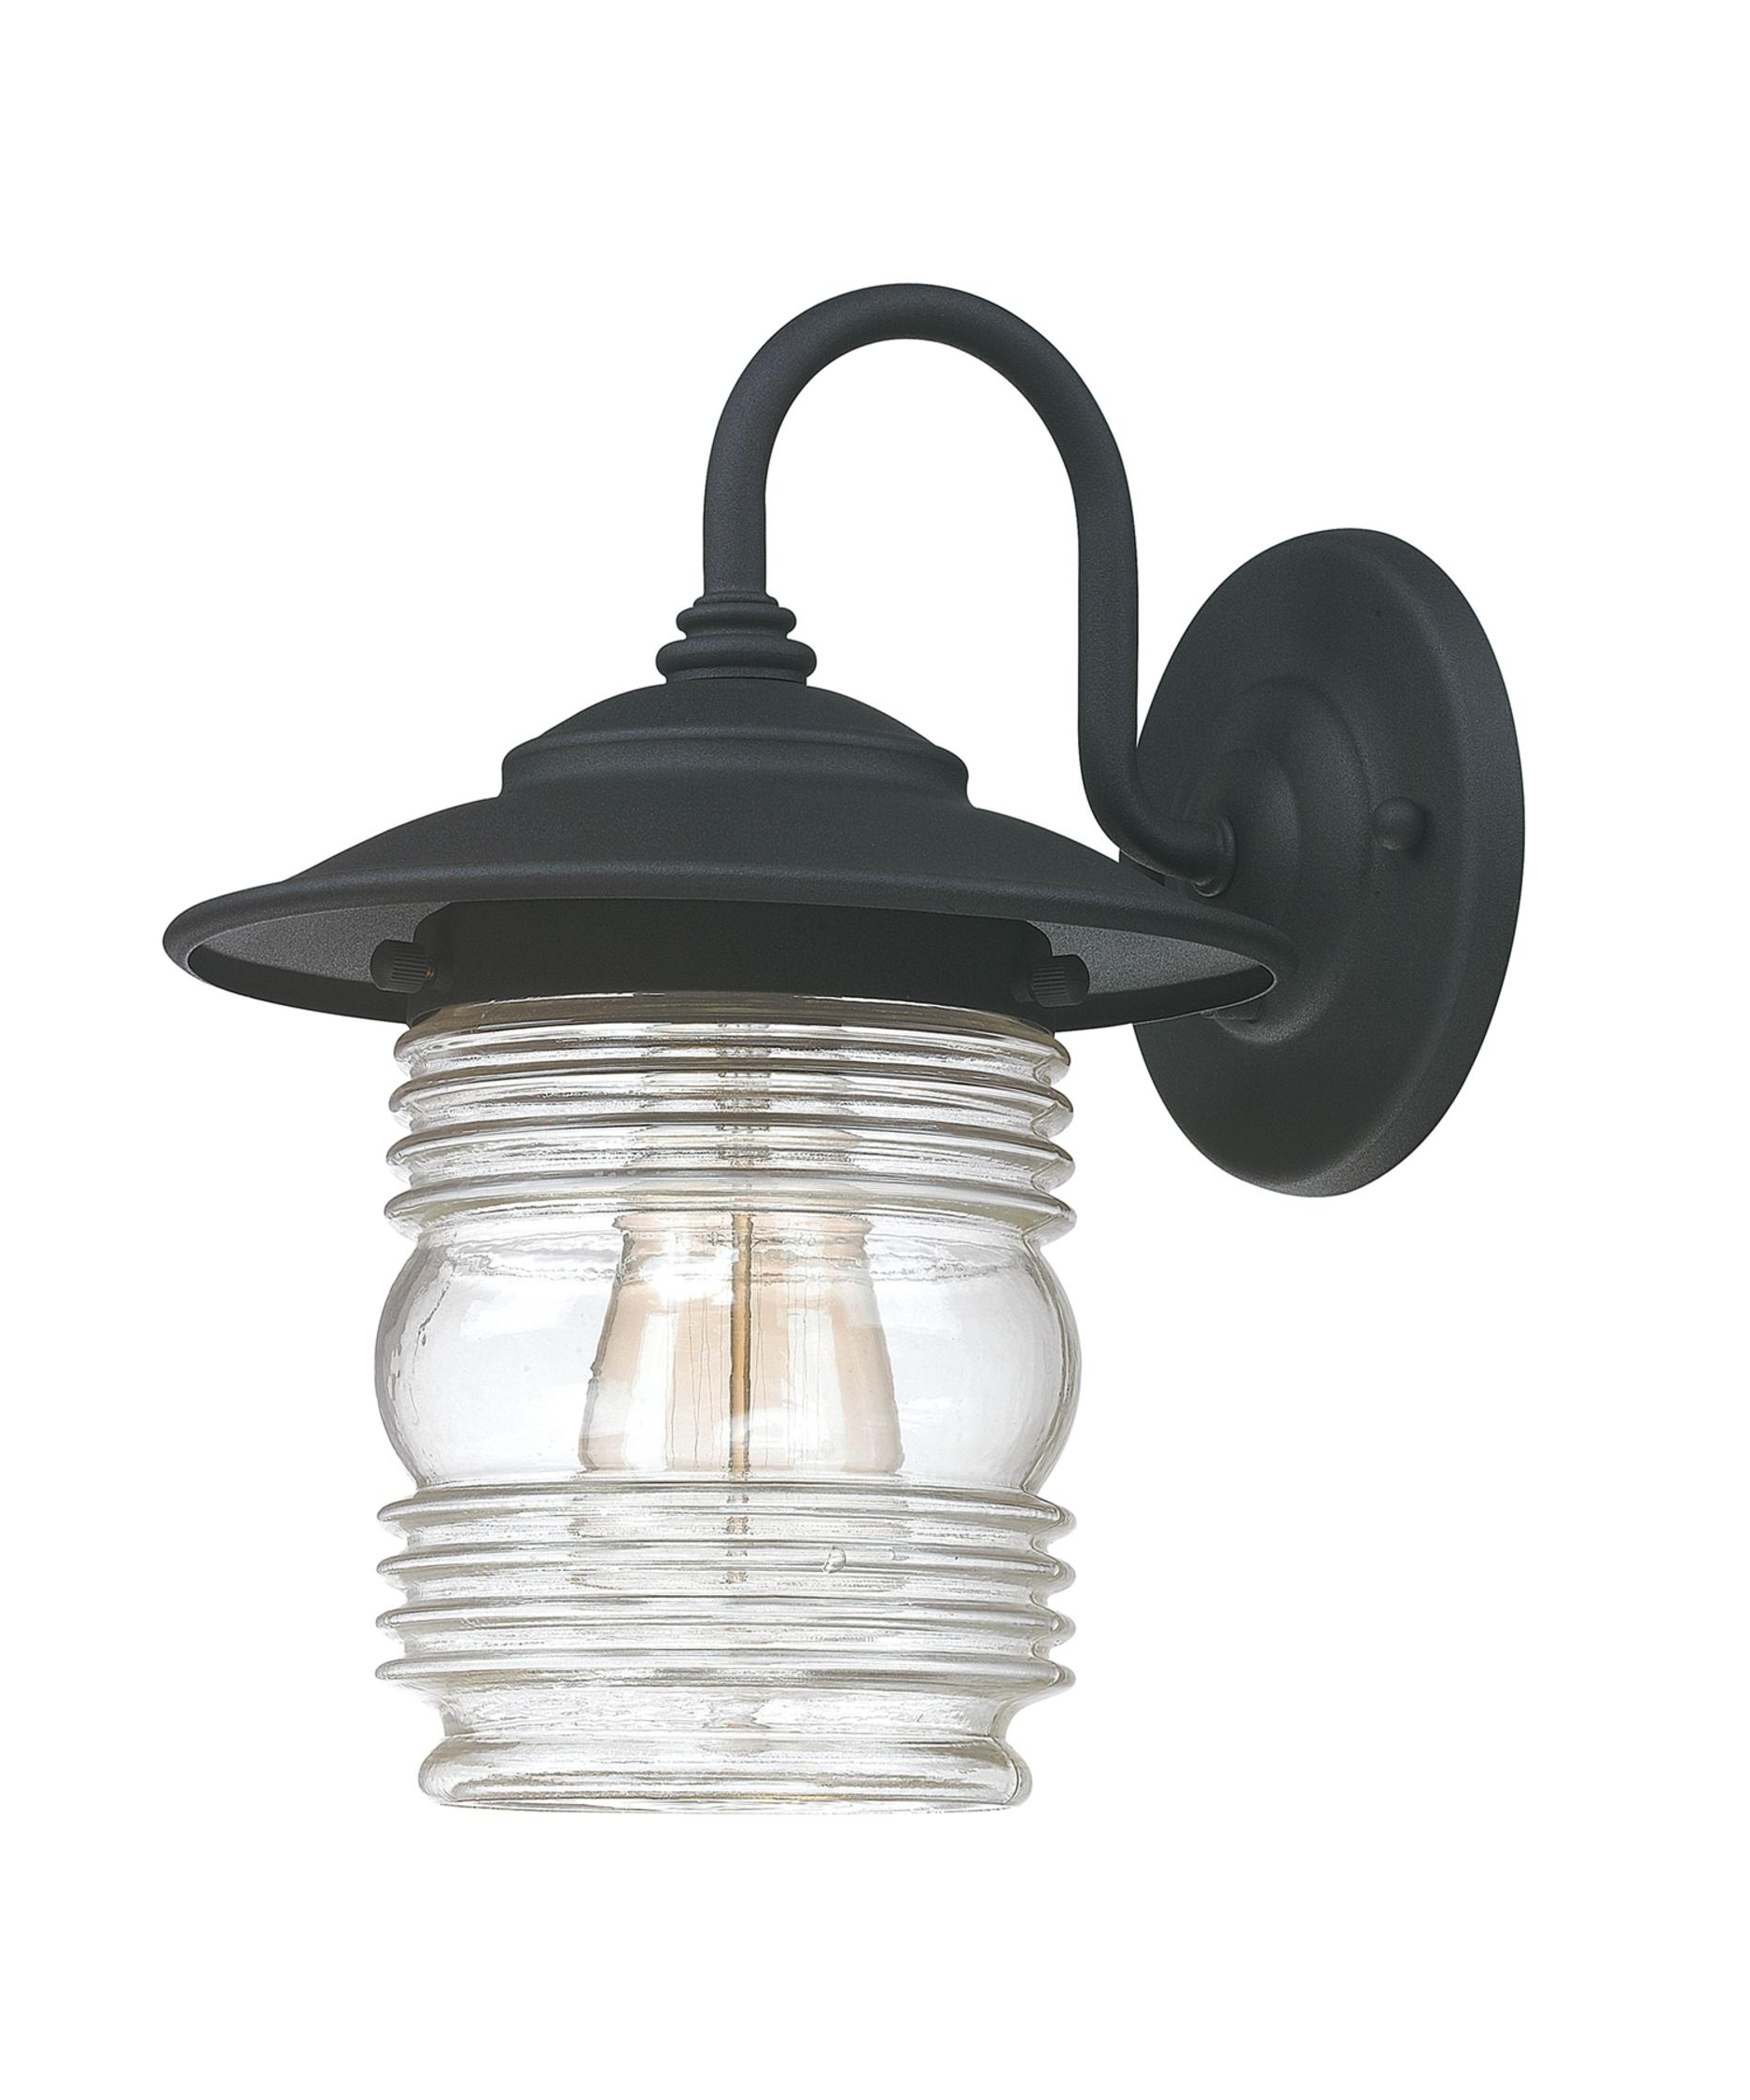 Capital Lighting 9671 Creekside 8 Inch Wide 1 Light Outdoor Wall Within Newest Retro Outdoor Wall Lighting (Gallery 20 of 20)